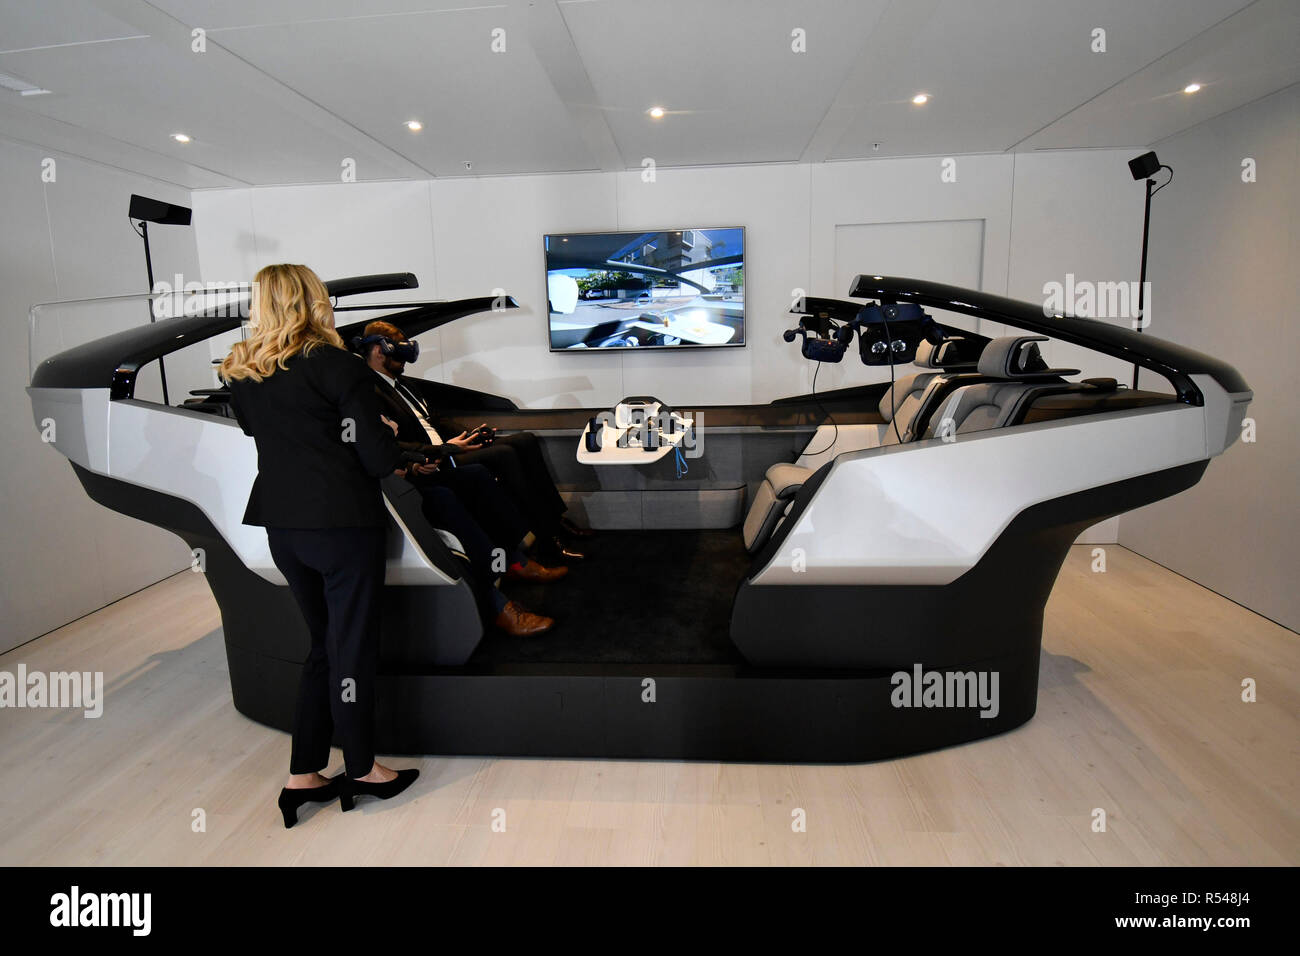 Volvo Luminar technology on display during the 2018 Los Angeles Auto Show media day Wednesday Nov 28, 2018. The show opens to the public Friday Nov 30th at the Los Angeles Convention Center.Photo by Gene Blevins/ZumaPress. Credit: Gene Blevins/ZUMA Wire/Alamy Live News - Stock Image